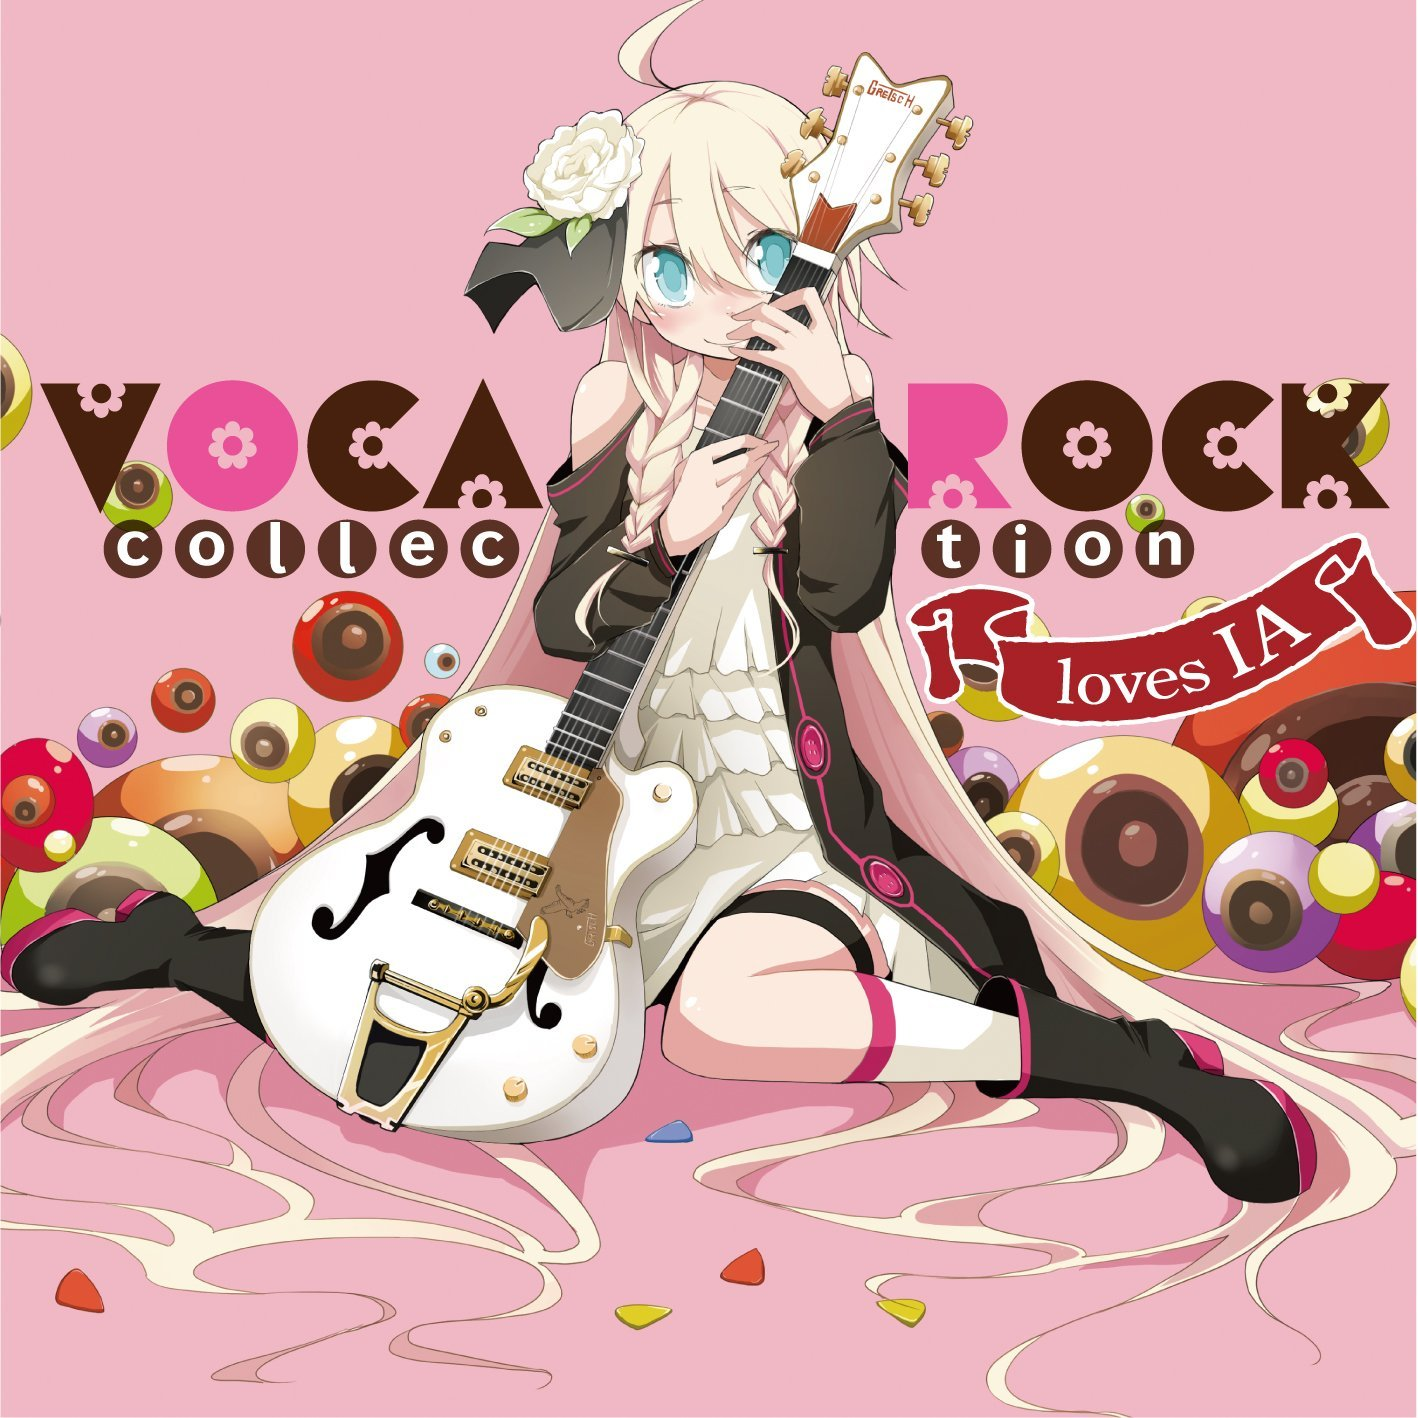 vocarock collection loves ia vocaloid wiki fandom powered by wikia